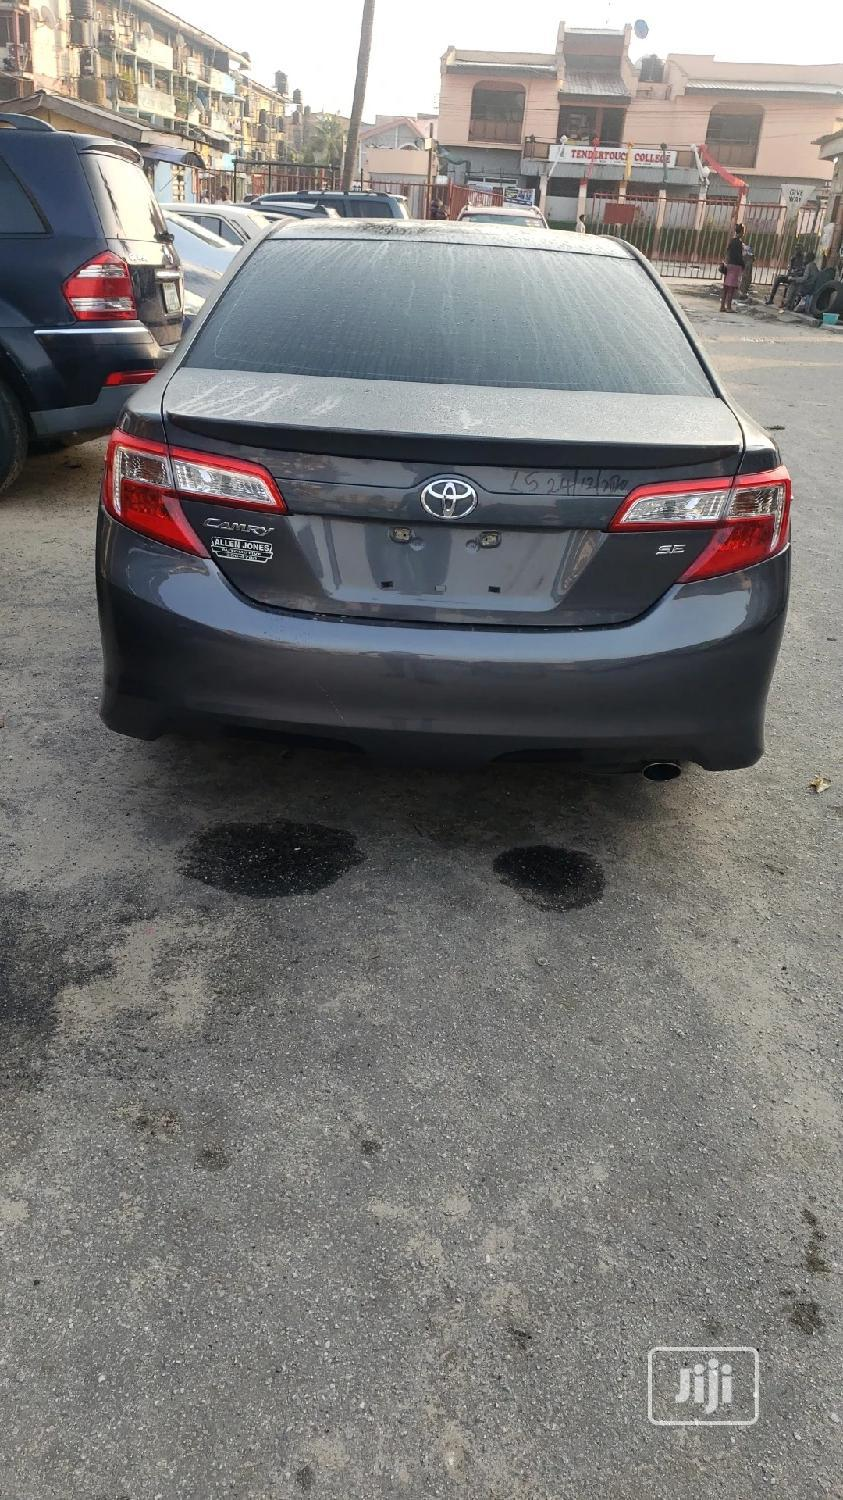 Toyota Camry 2012 Gray | Cars for sale in Amuwo-Odofin, Lagos State, Nigeria